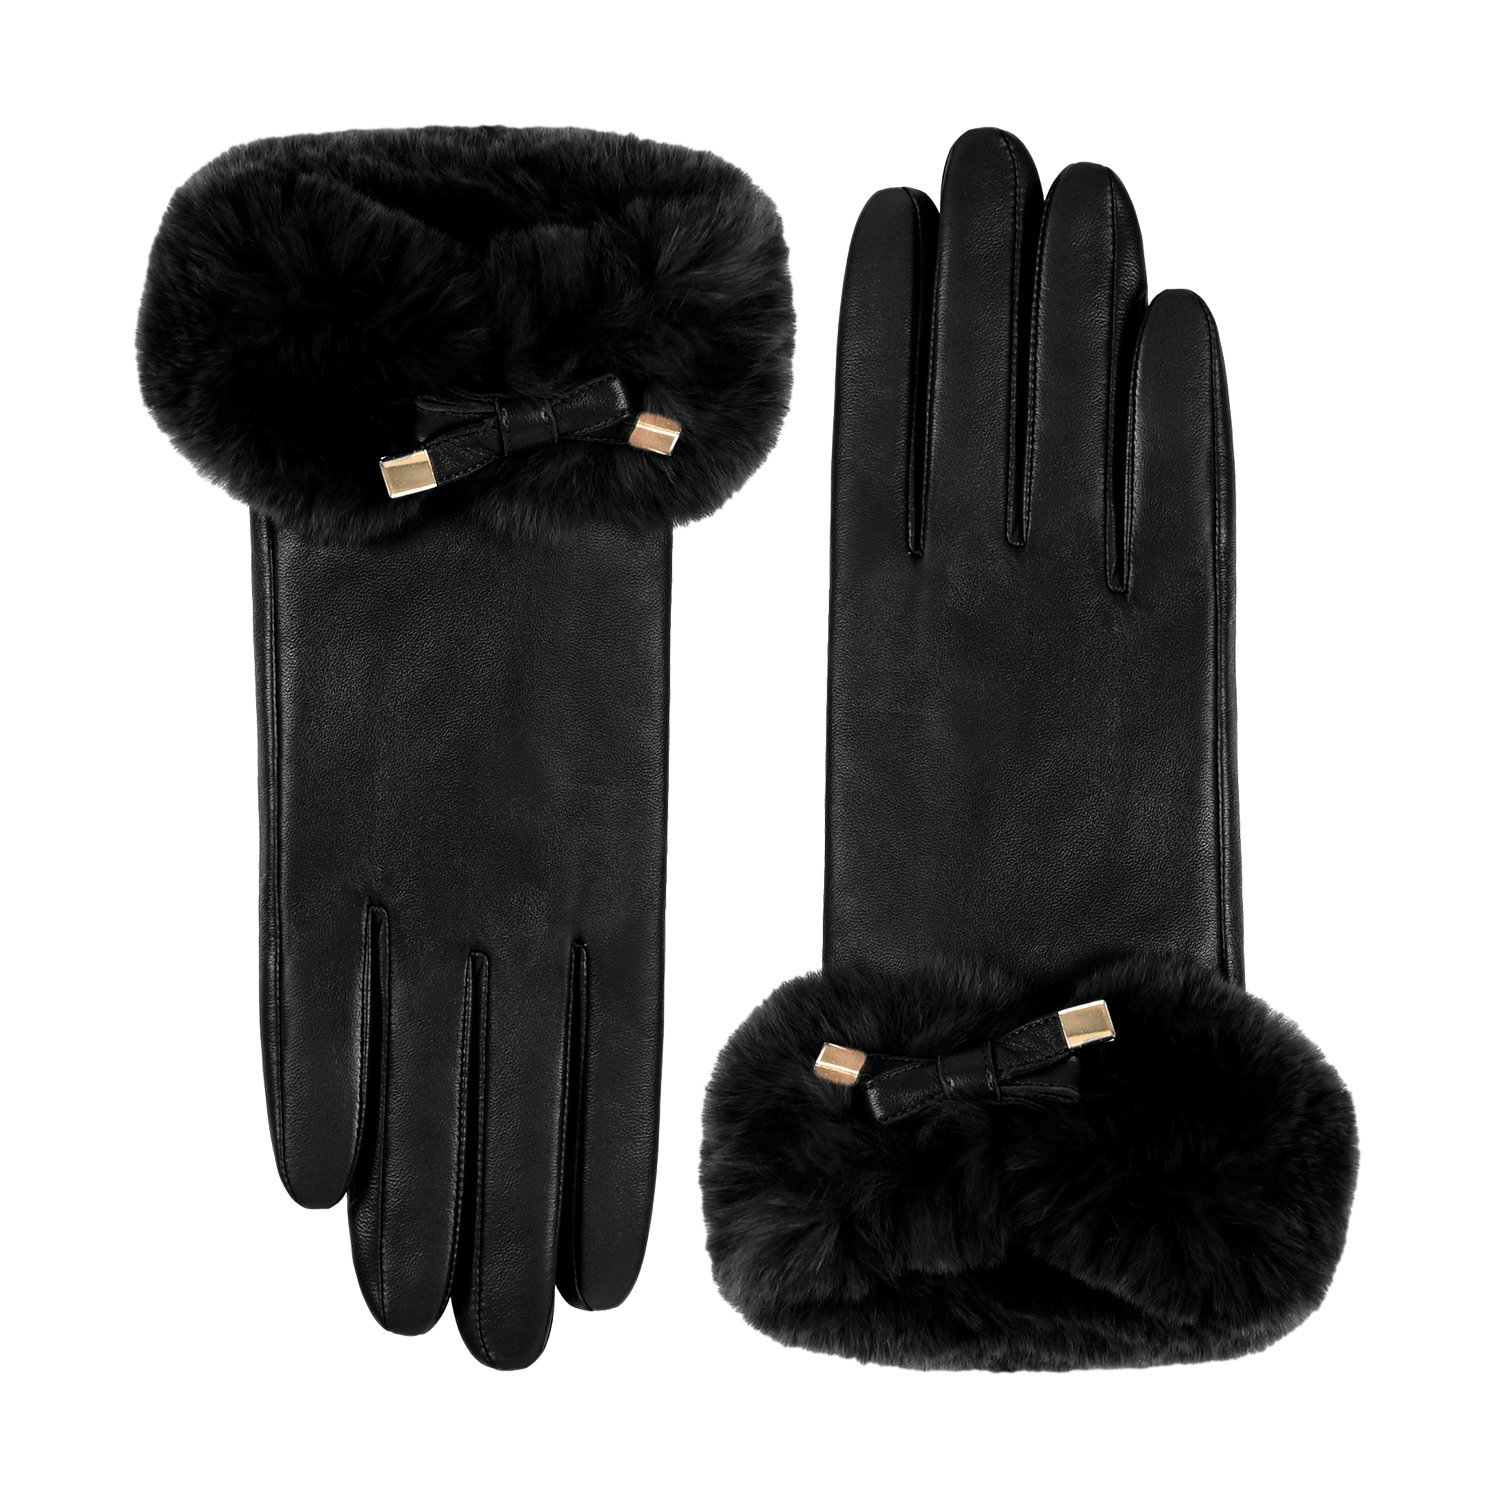 GSG Ladies Rex Rabbit Fur Touchscreen Gloves Fashion Bowtie Italian Genuine Nappa Leather Cold Weather Gloves Warm Wool Lined Winter Gifts Black 8